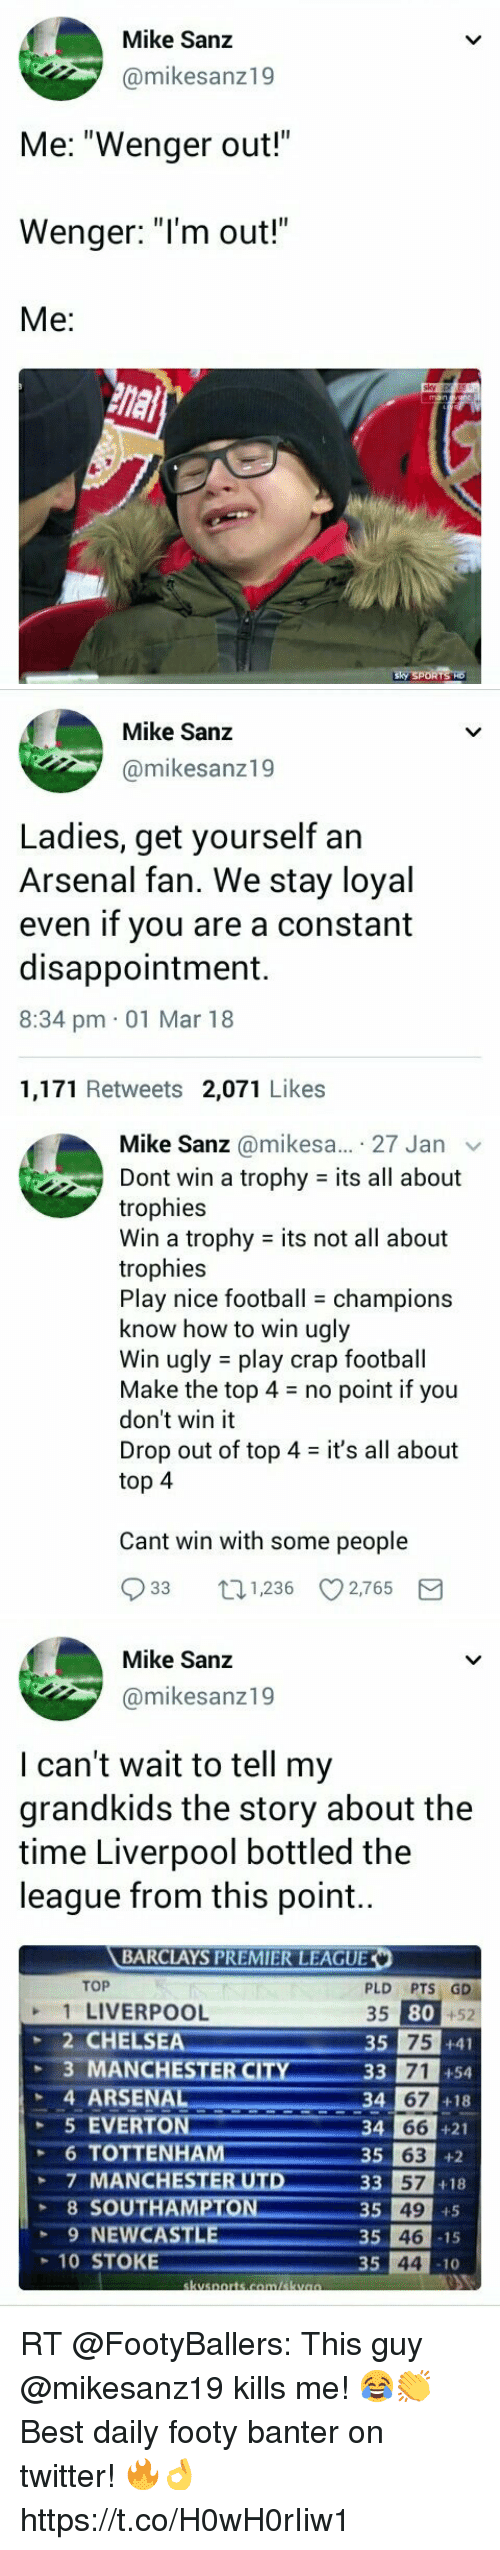 "Arsenal, Chelsea, and Everton: Mike Sanz  @mikesanz19  Me: ""Wenger out!""  Wenger: ""l'm out!""  Me:   Mike Sanz  @mikesanz19  Ladies, get yourself an  Arsenal fan. We stay loyal  even if you are a constant  disappointment.  8:34 pm 01 Mar 18  1,171 Retweets 2,071 Likes   Mike Sanz @mikesa... 27 Jan v  Dont win a trophy - its all about  trophies  Win a trophy its not all about  trophies  Play nice footballchampions  know how to win ugly  Win ugly play crap football  Make the top 4no point if you  don't win it  Drop out of top 4 - it's all about  top 4  Cant win with some people  933 01236 2,765 E   Mike Sanz  @mikesanz19  I can't wait to tell my  grandkids the story about the  time Liverpool bottled the  league from this point..  BARCLAYS PREMIER LEAGUE  TOP  1 LIVERPOOL  2 CHELSEA  PLD PTS GD  +52  35  80  35 75 +41  +54  +18  34 66 +21  RCITY33 71  67  STE  4 ARSE  5 EVERTON  6 TOTTENHAM  34  35  5 63  7 MANCHESTERUTD 33 57 +18  8 SOUTHAMPTON  9 NEW  35 49 +5  35 46  35 44 10  CASTL  10 STOKE RT @FootyBallers: This guy @mikesanz19 kills me! 😂👏  Best daily footy banter on twitter! 🔥👌 https://t.co/H0wH0rIiw1"